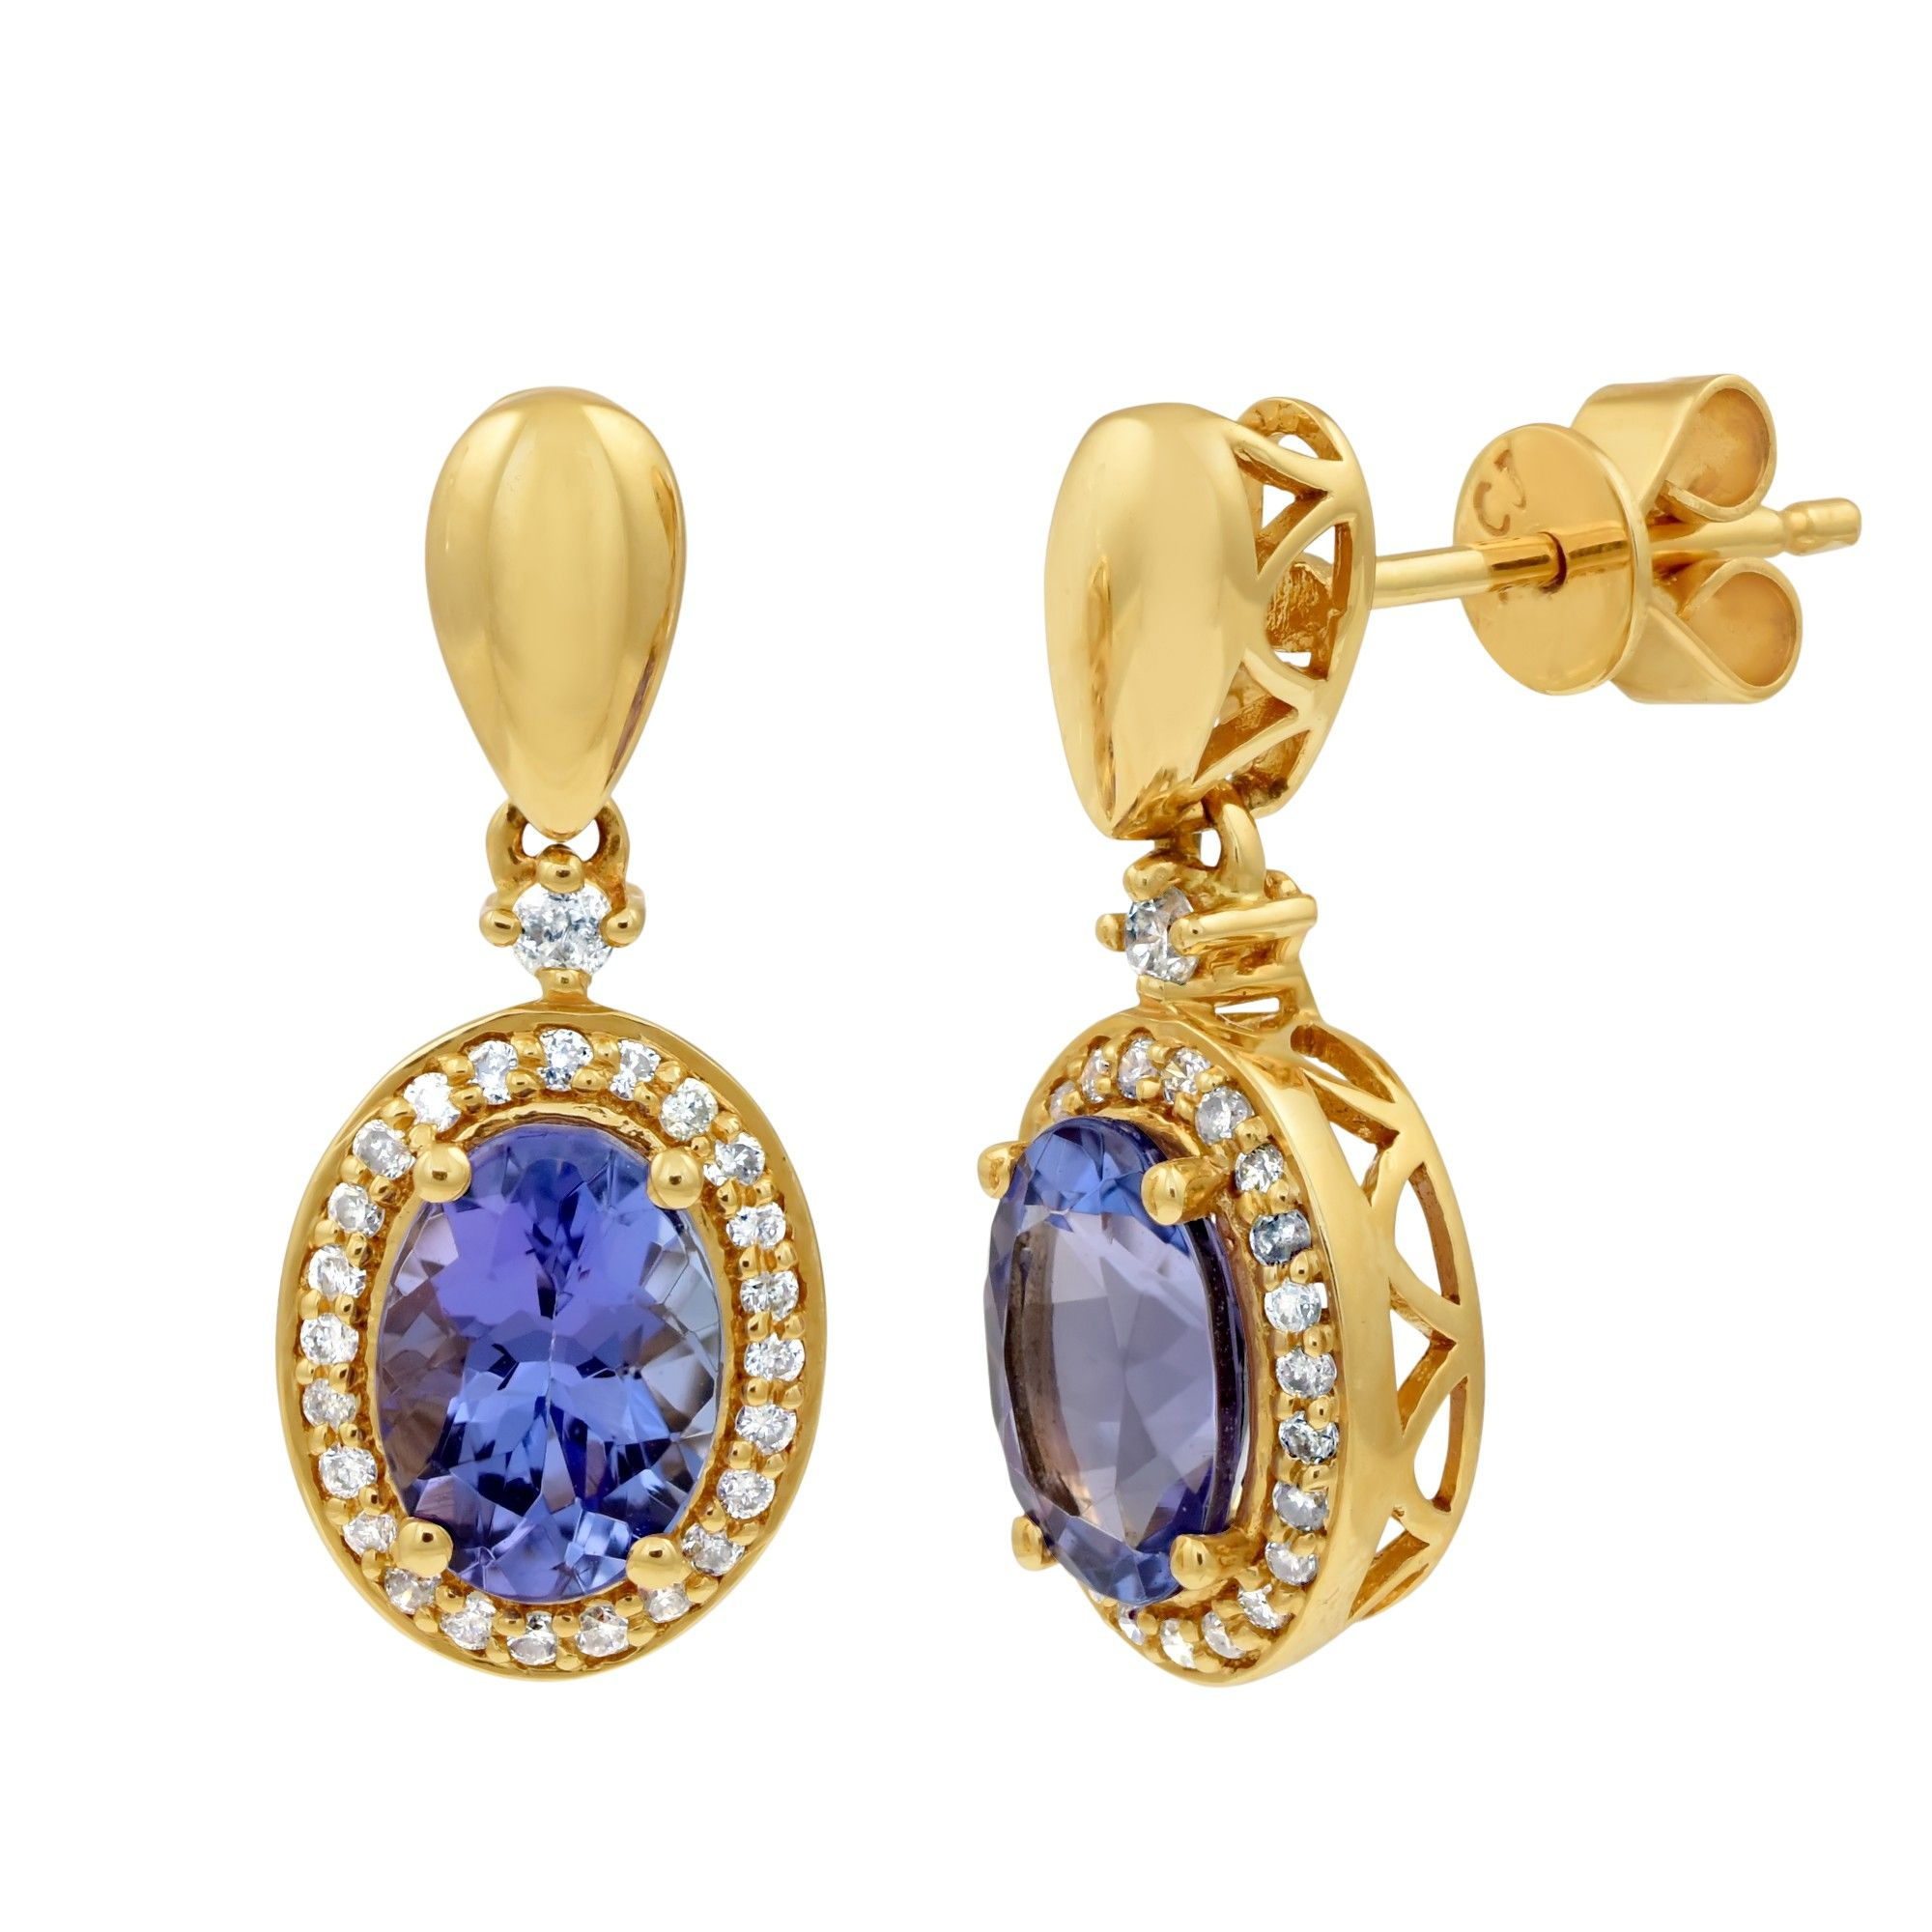 halo earrings white tanzanite davies diamond product and gold drop edwards